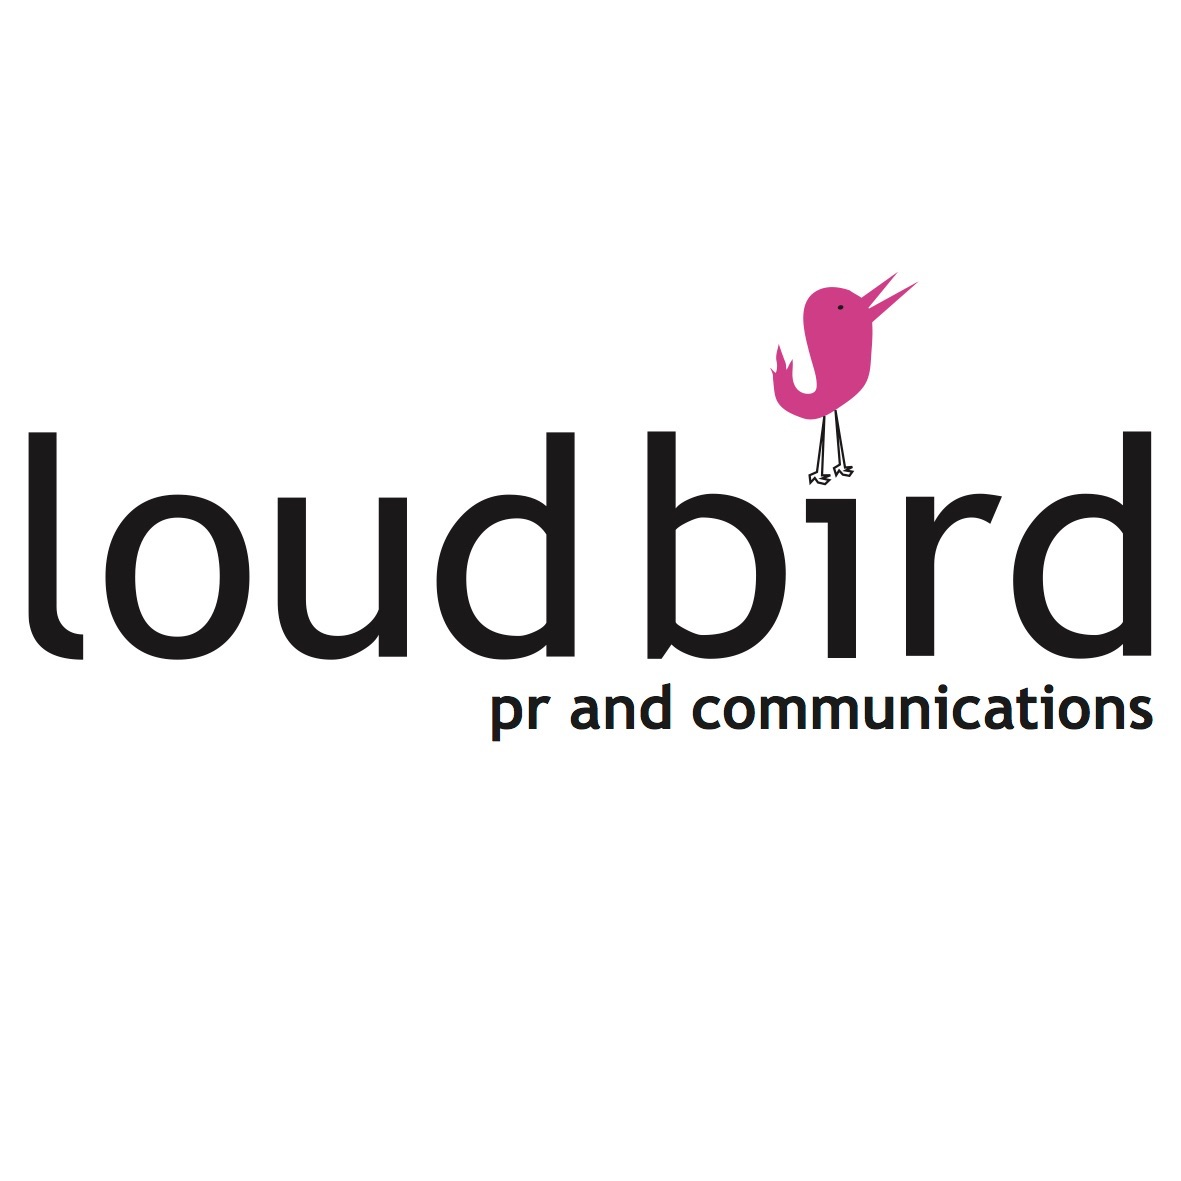 Loudbird Is A Pr Marketing And Communications Agency Based In St